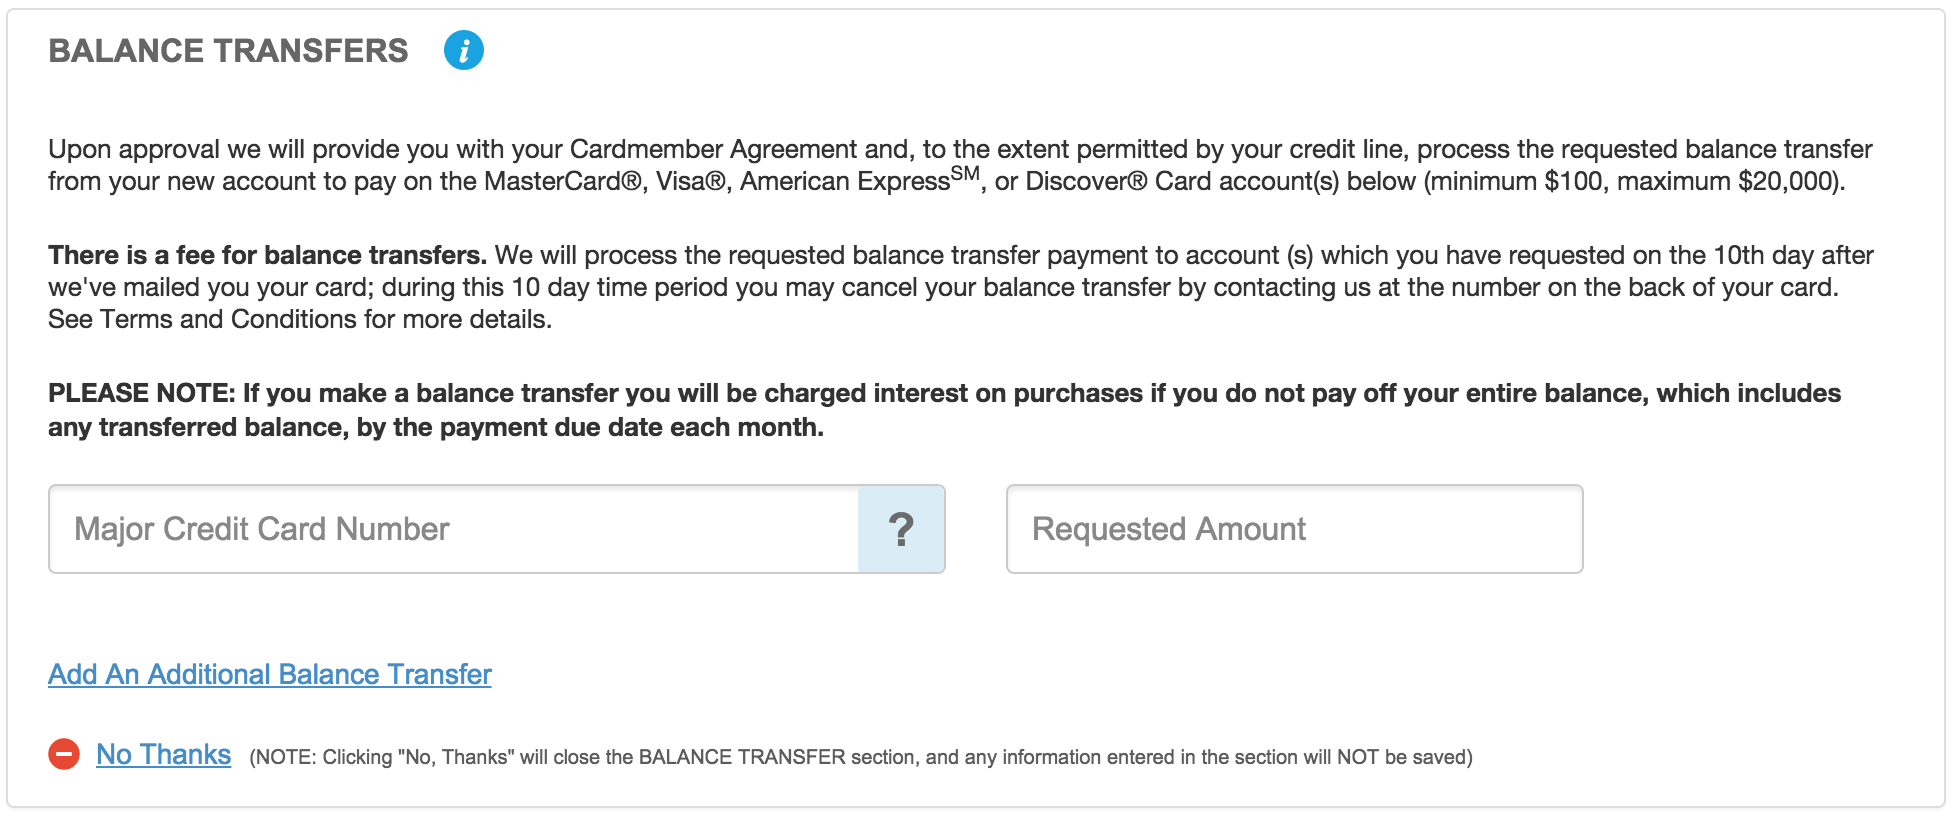 Priceline credit card login to my account - Priceline Credit Card Login To My Account Priceline Credit Card Apply 7